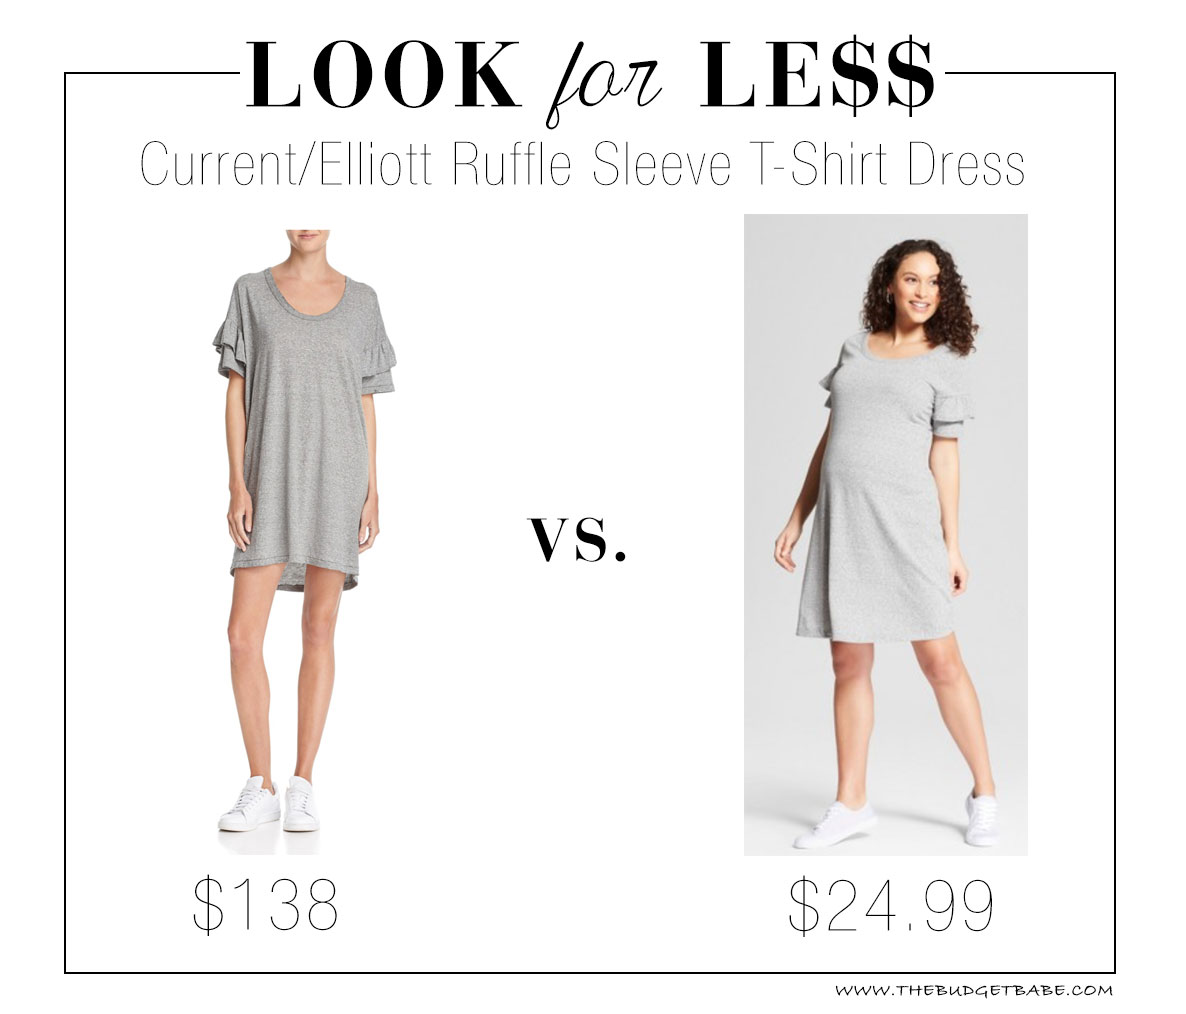 Look for Less: Current/Elliott Ruffle Sleeve T-Shirt Dress